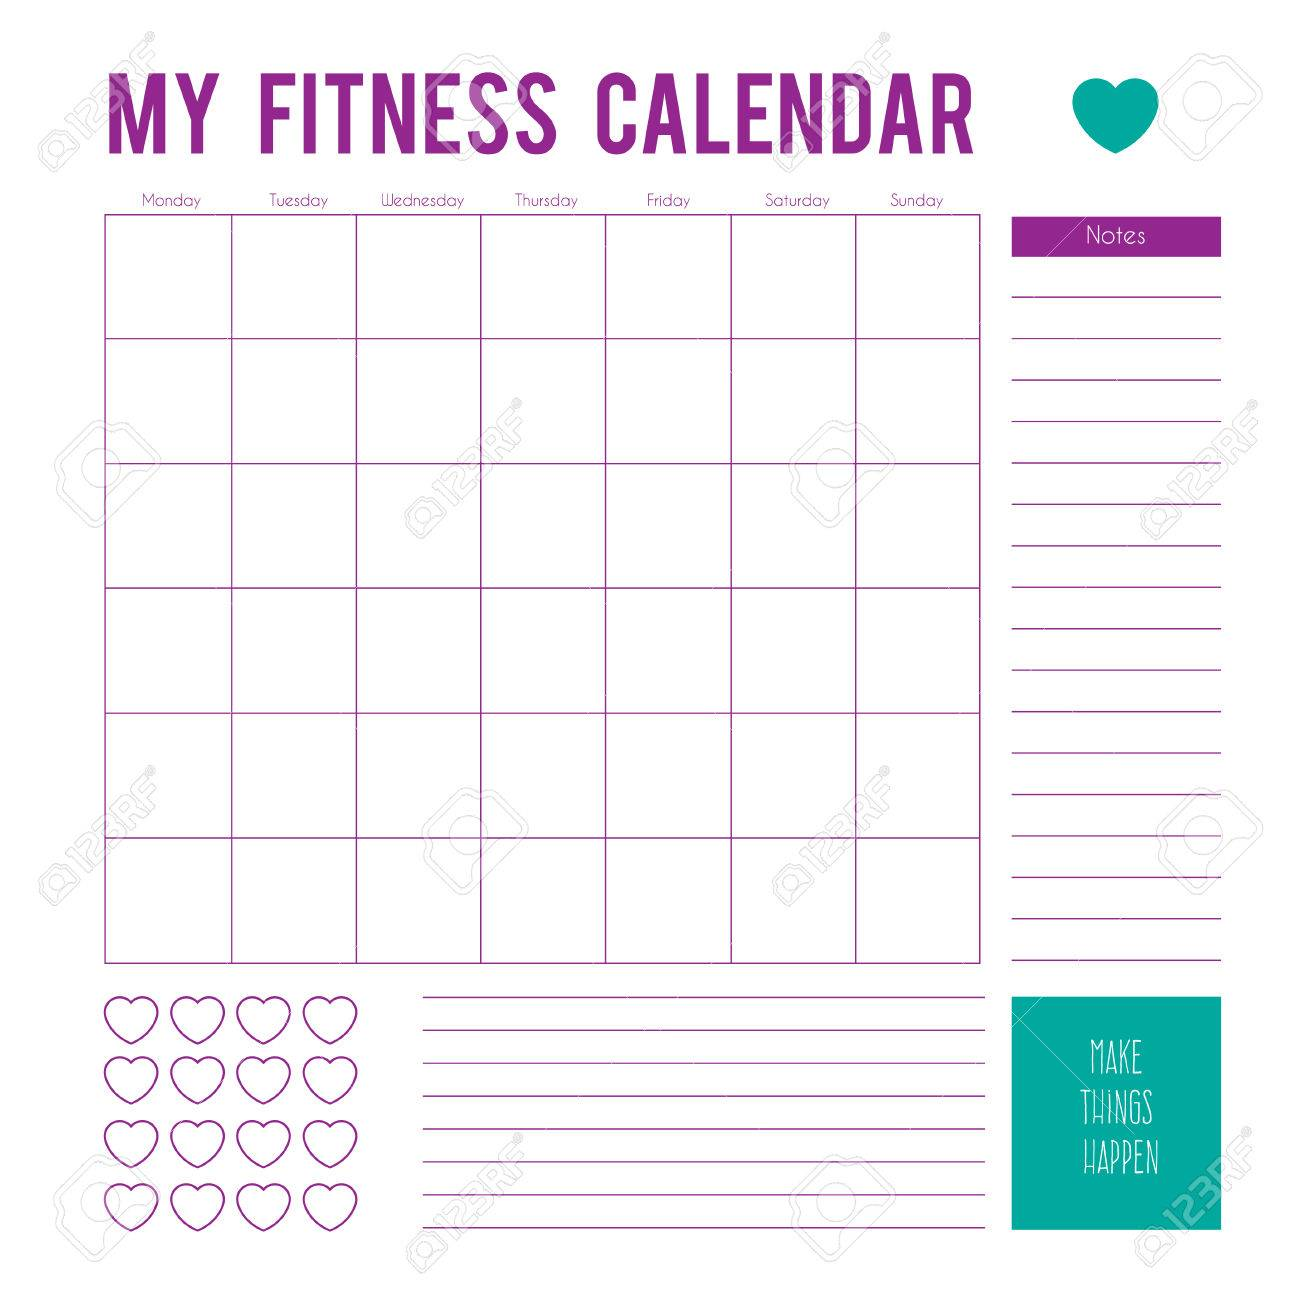 photograph about Printable Workout Plans identify Exercise calendar method for a 7 days, calendar webpage. Vector printable..